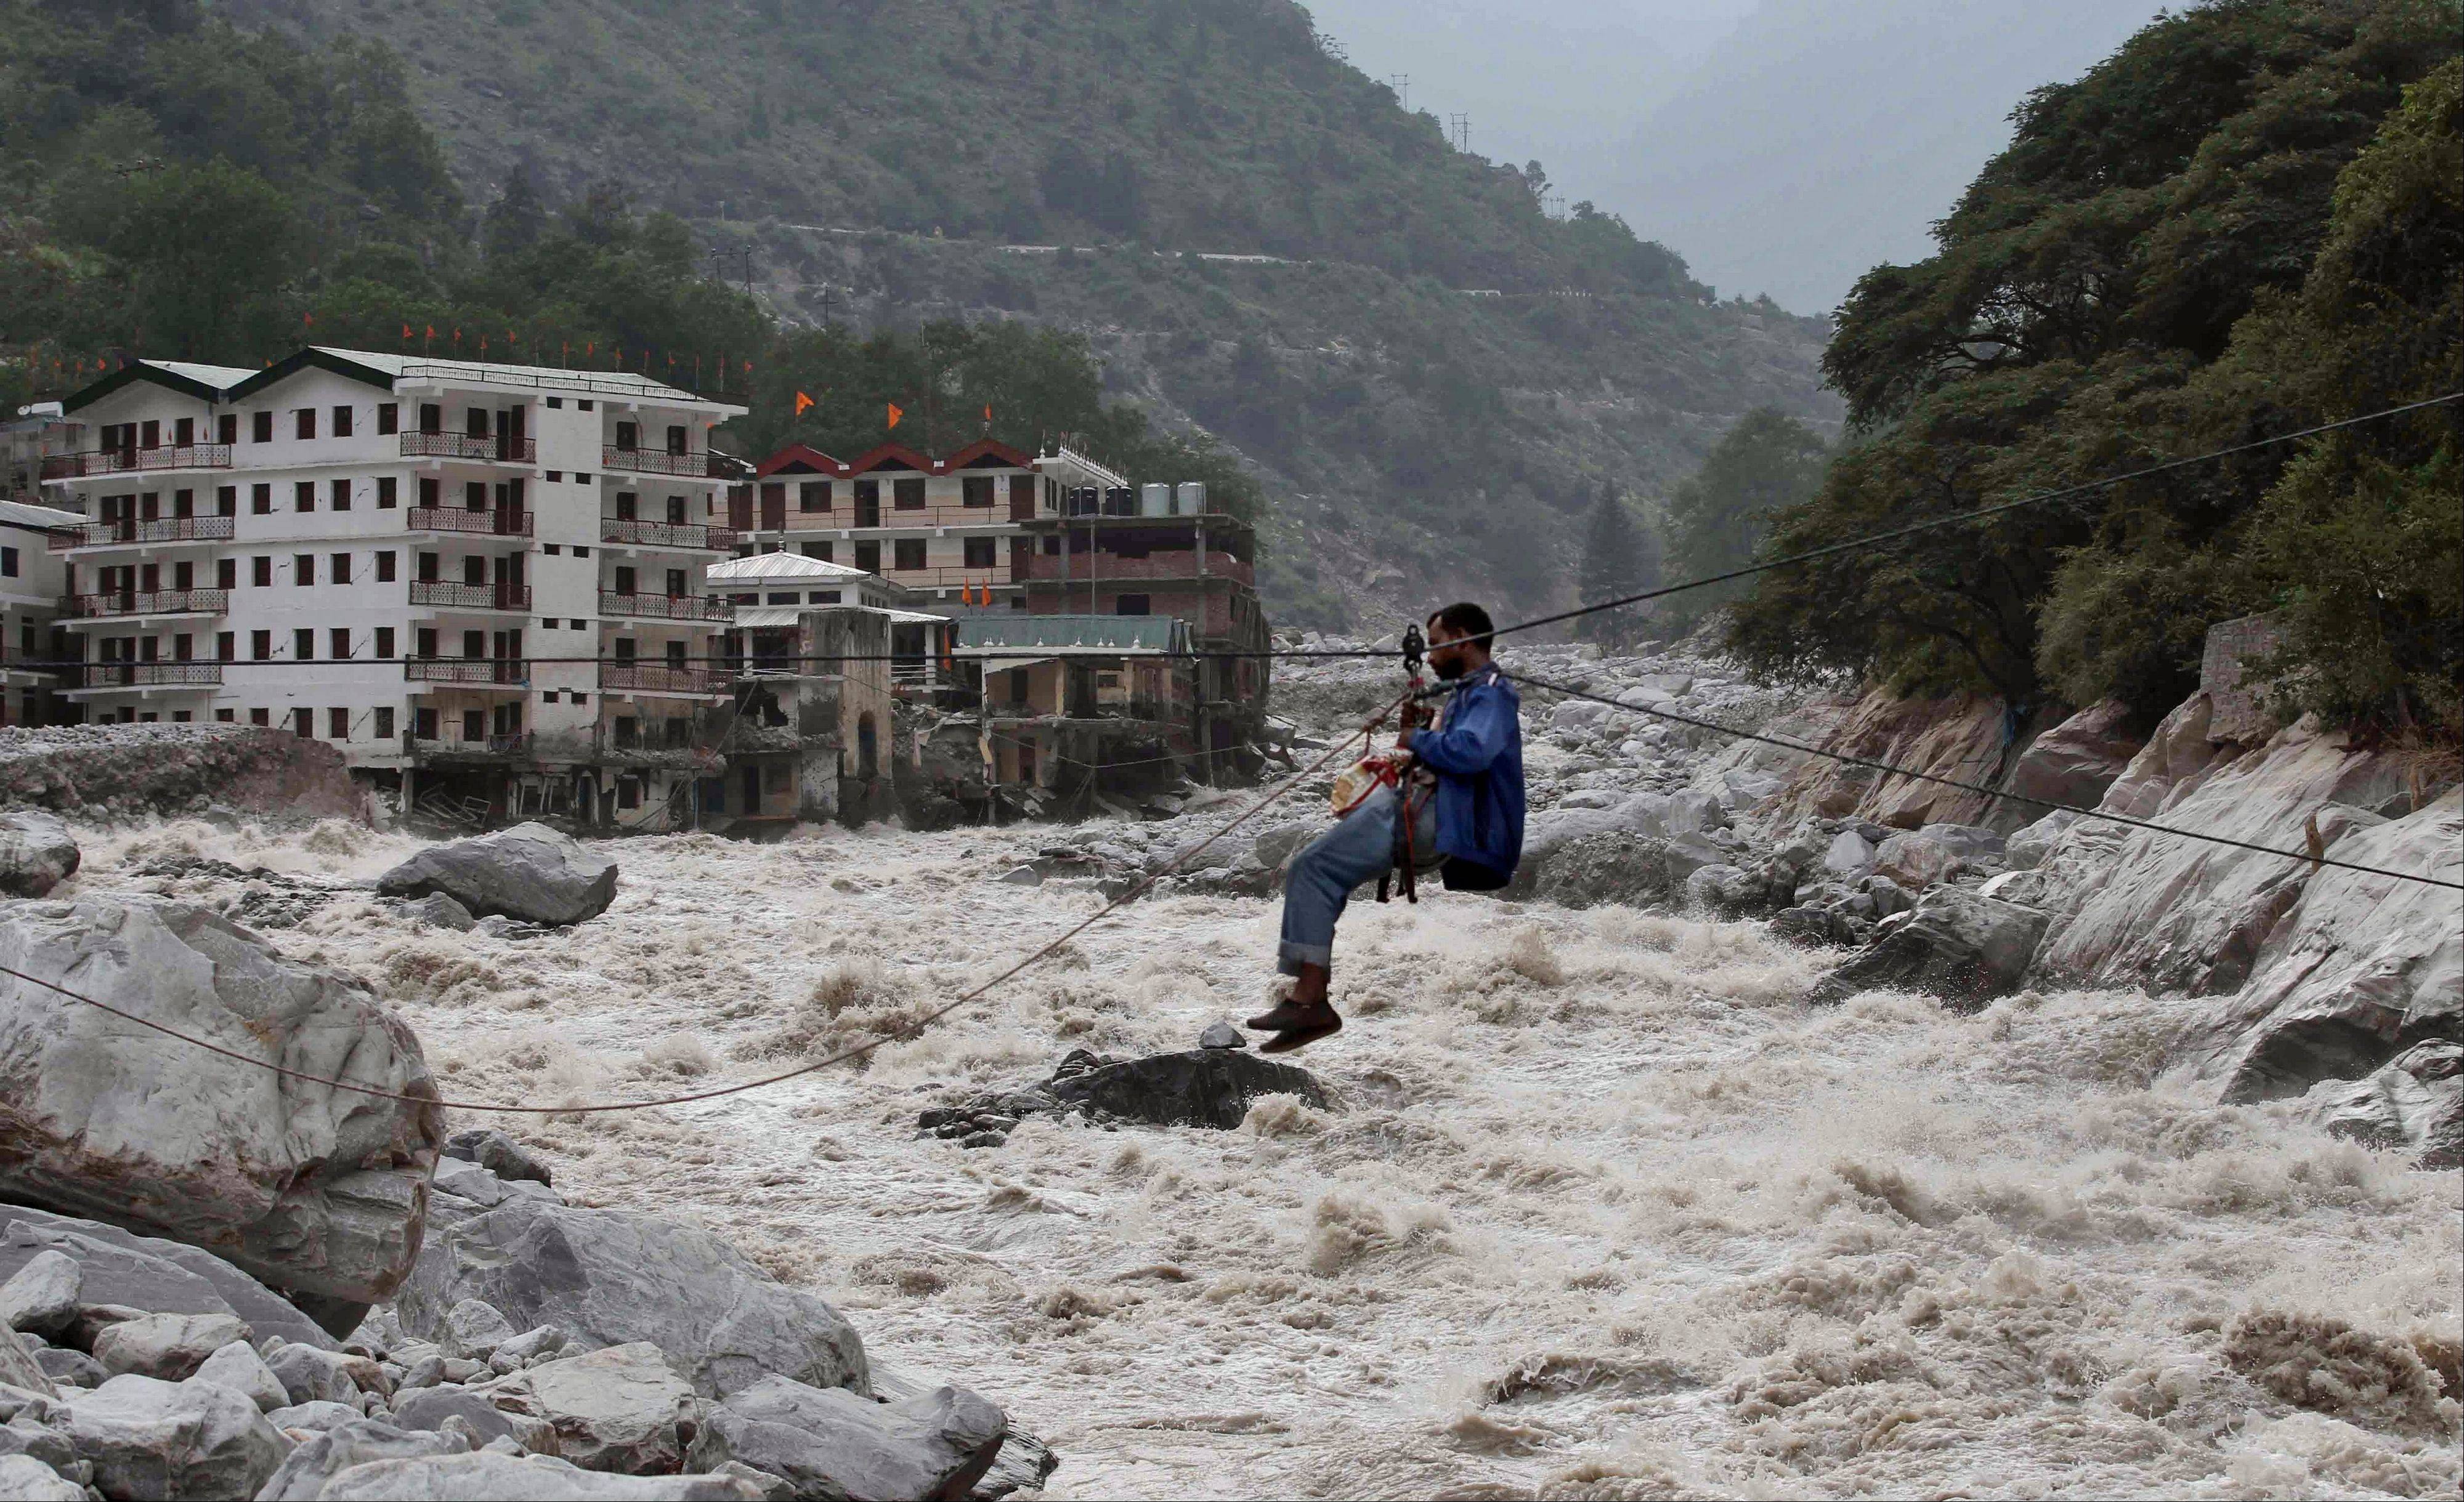 In this June 23 photo, an Indian man crosses over a swollen river with the help of a rope in Govindghat, in the northern India state of Uttarakhand, India. A top Indian official said more than 5,700 people missing since last month's devastating floods that ravaged northern India are now presumed dead.